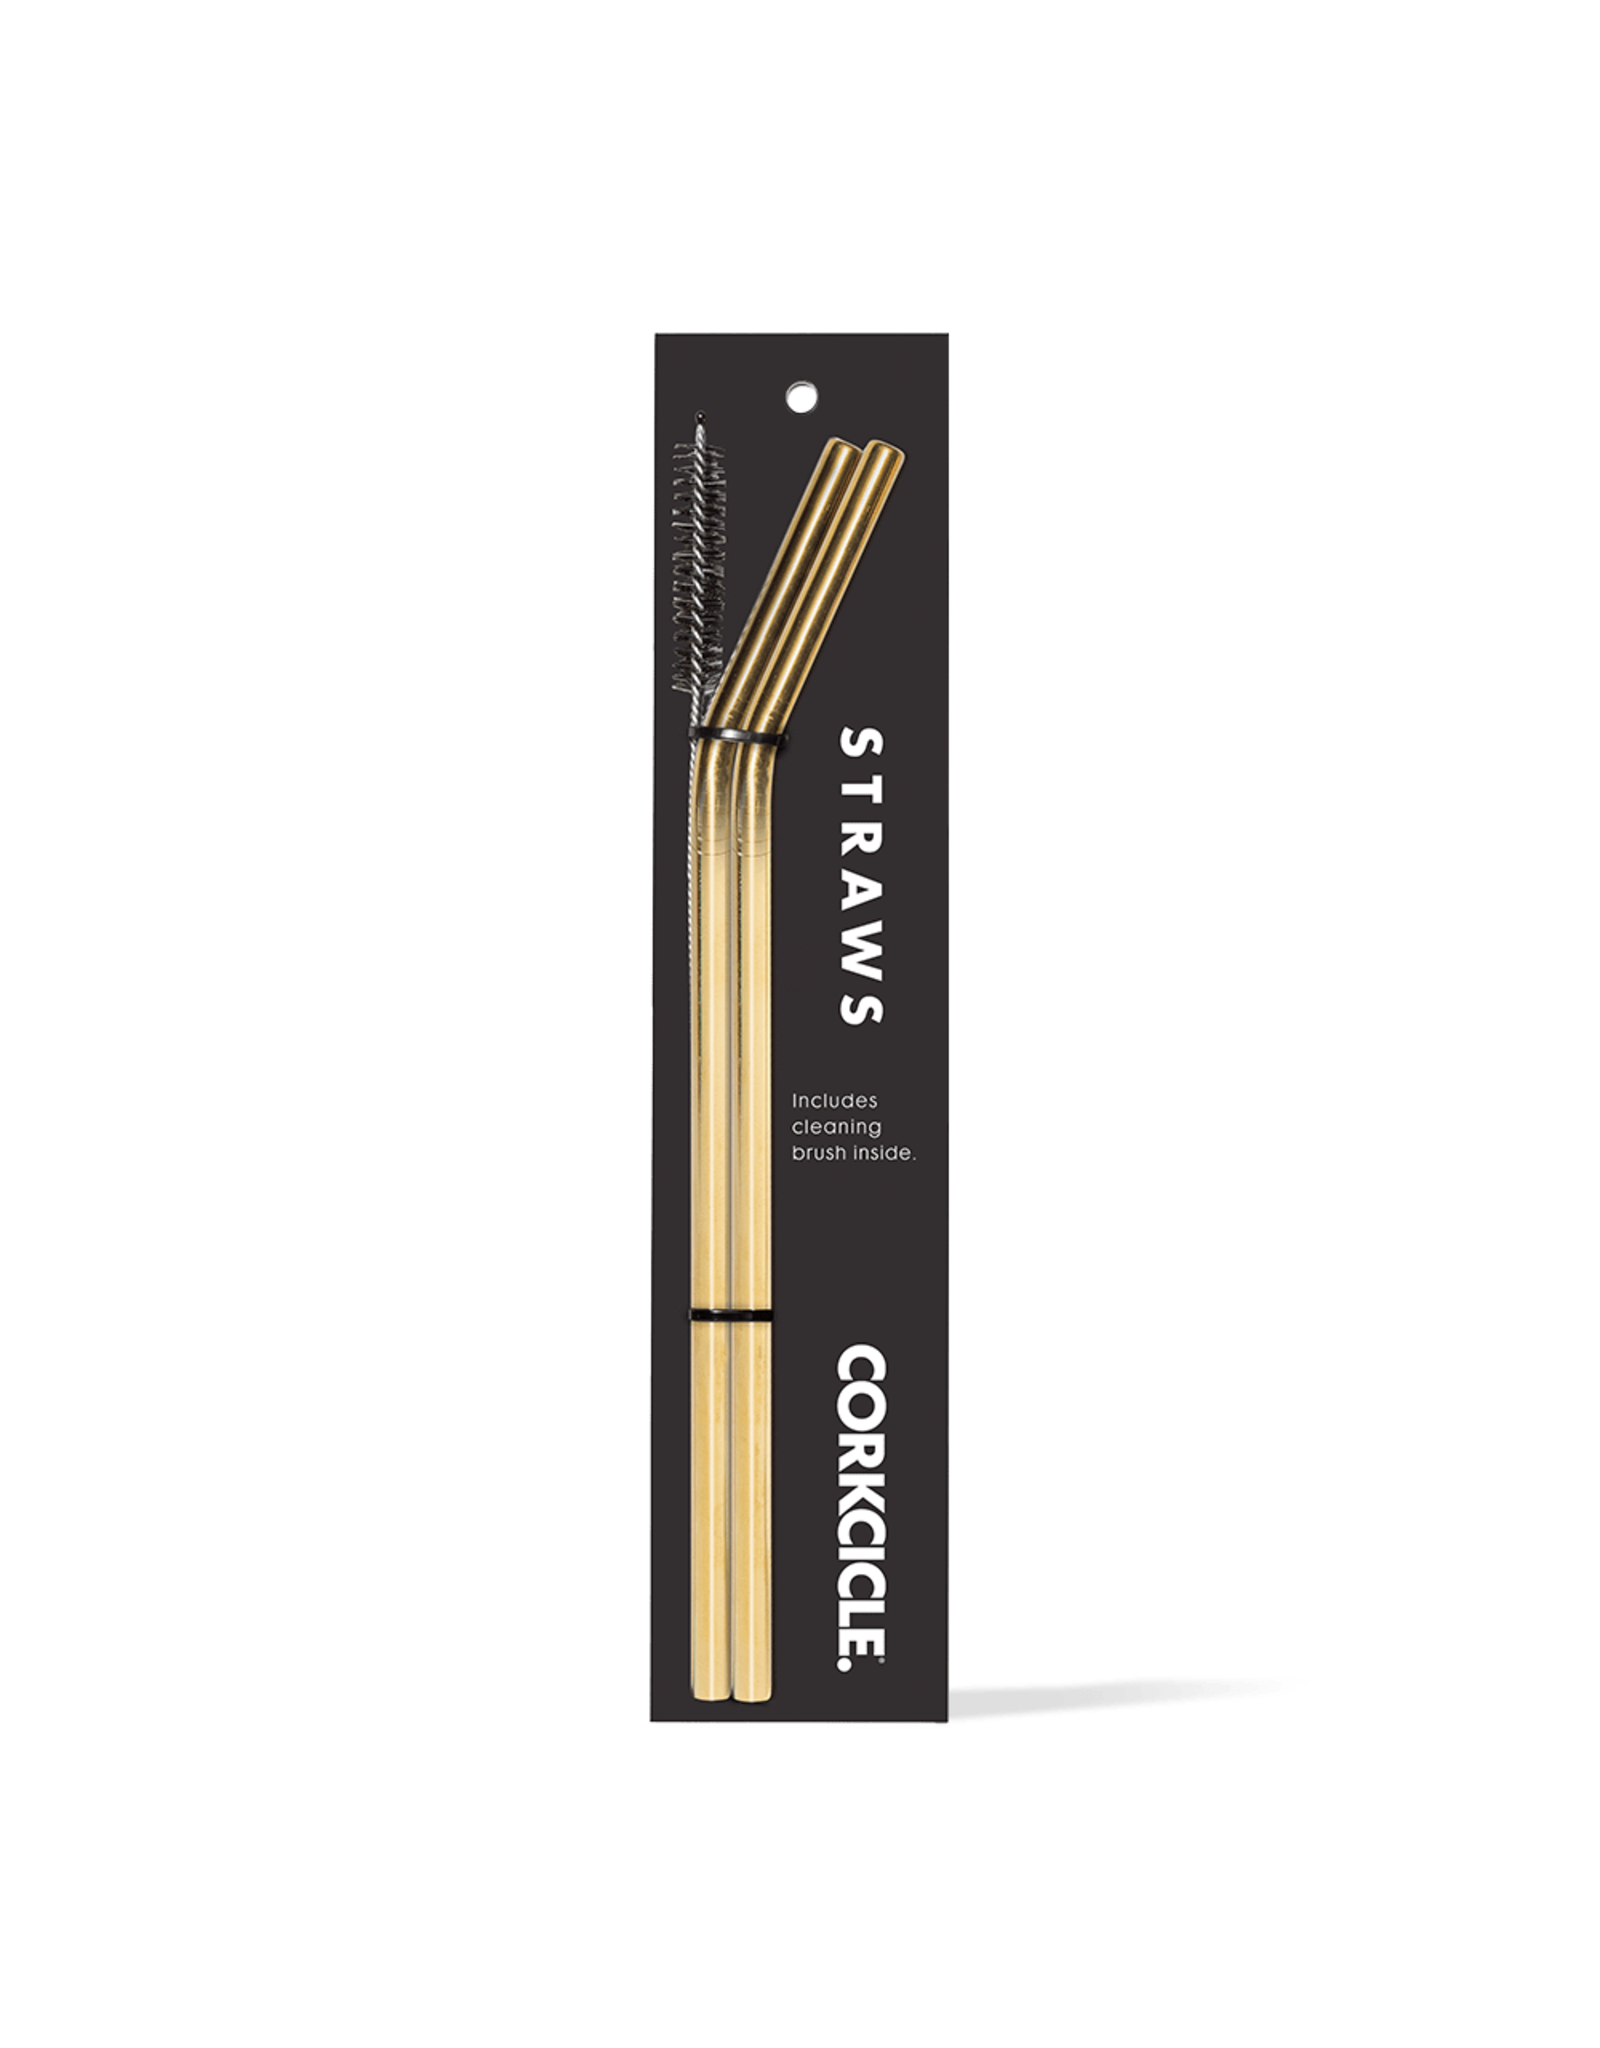 CORKCICLE CORKCICLE GOLD STRAWS